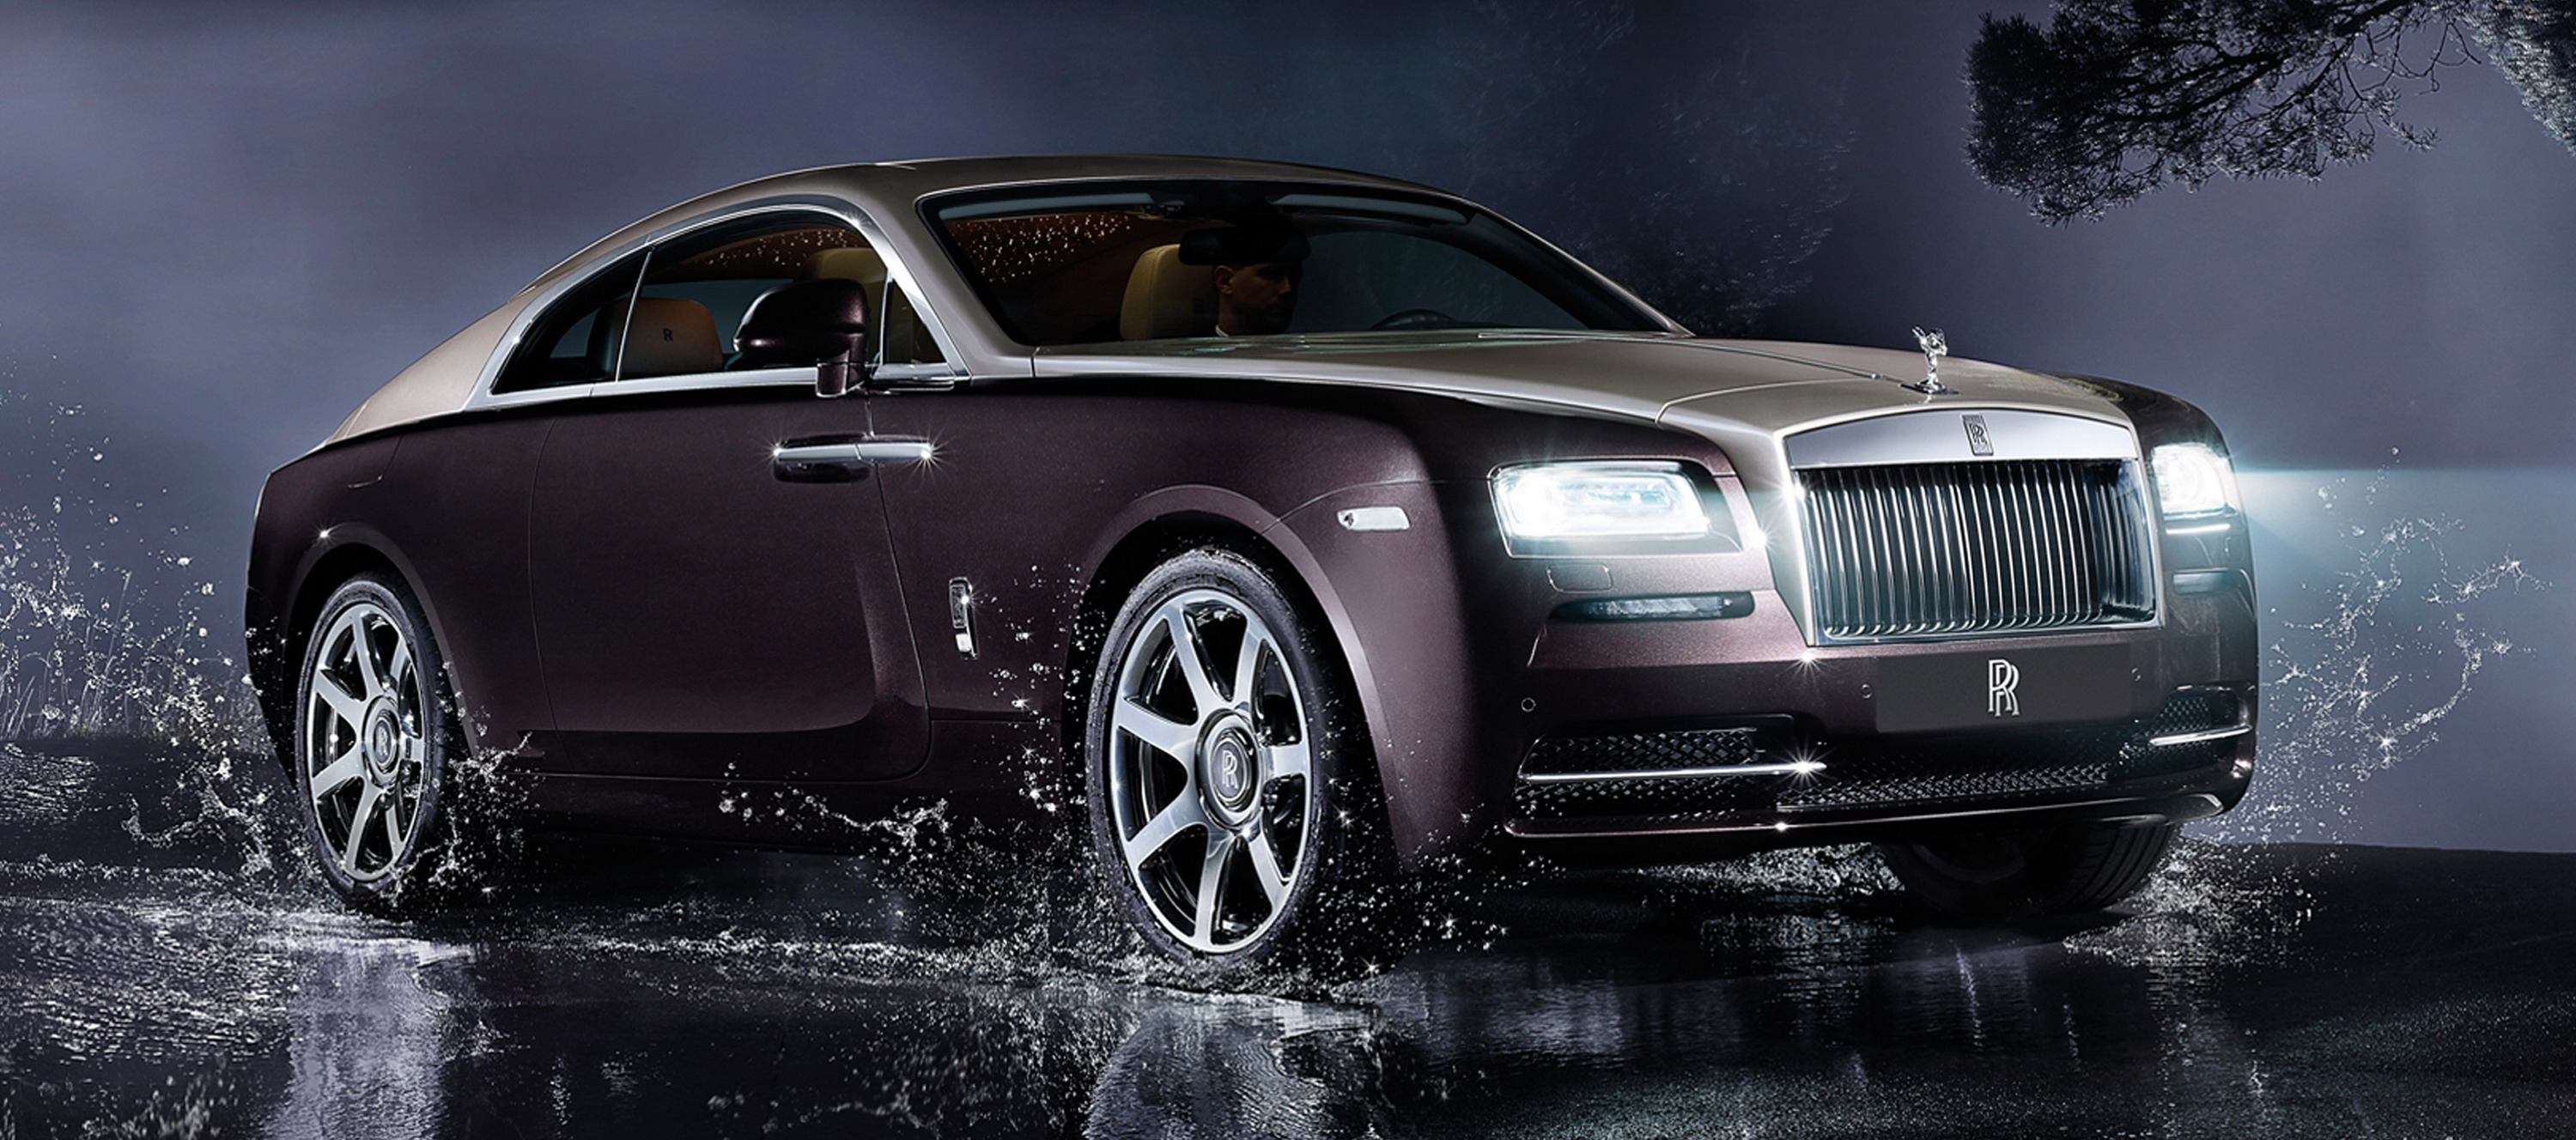 Rolls Royce Wraith 0 60 >> Rolls Royce Wraith Latest News Reviews Specifications Prices